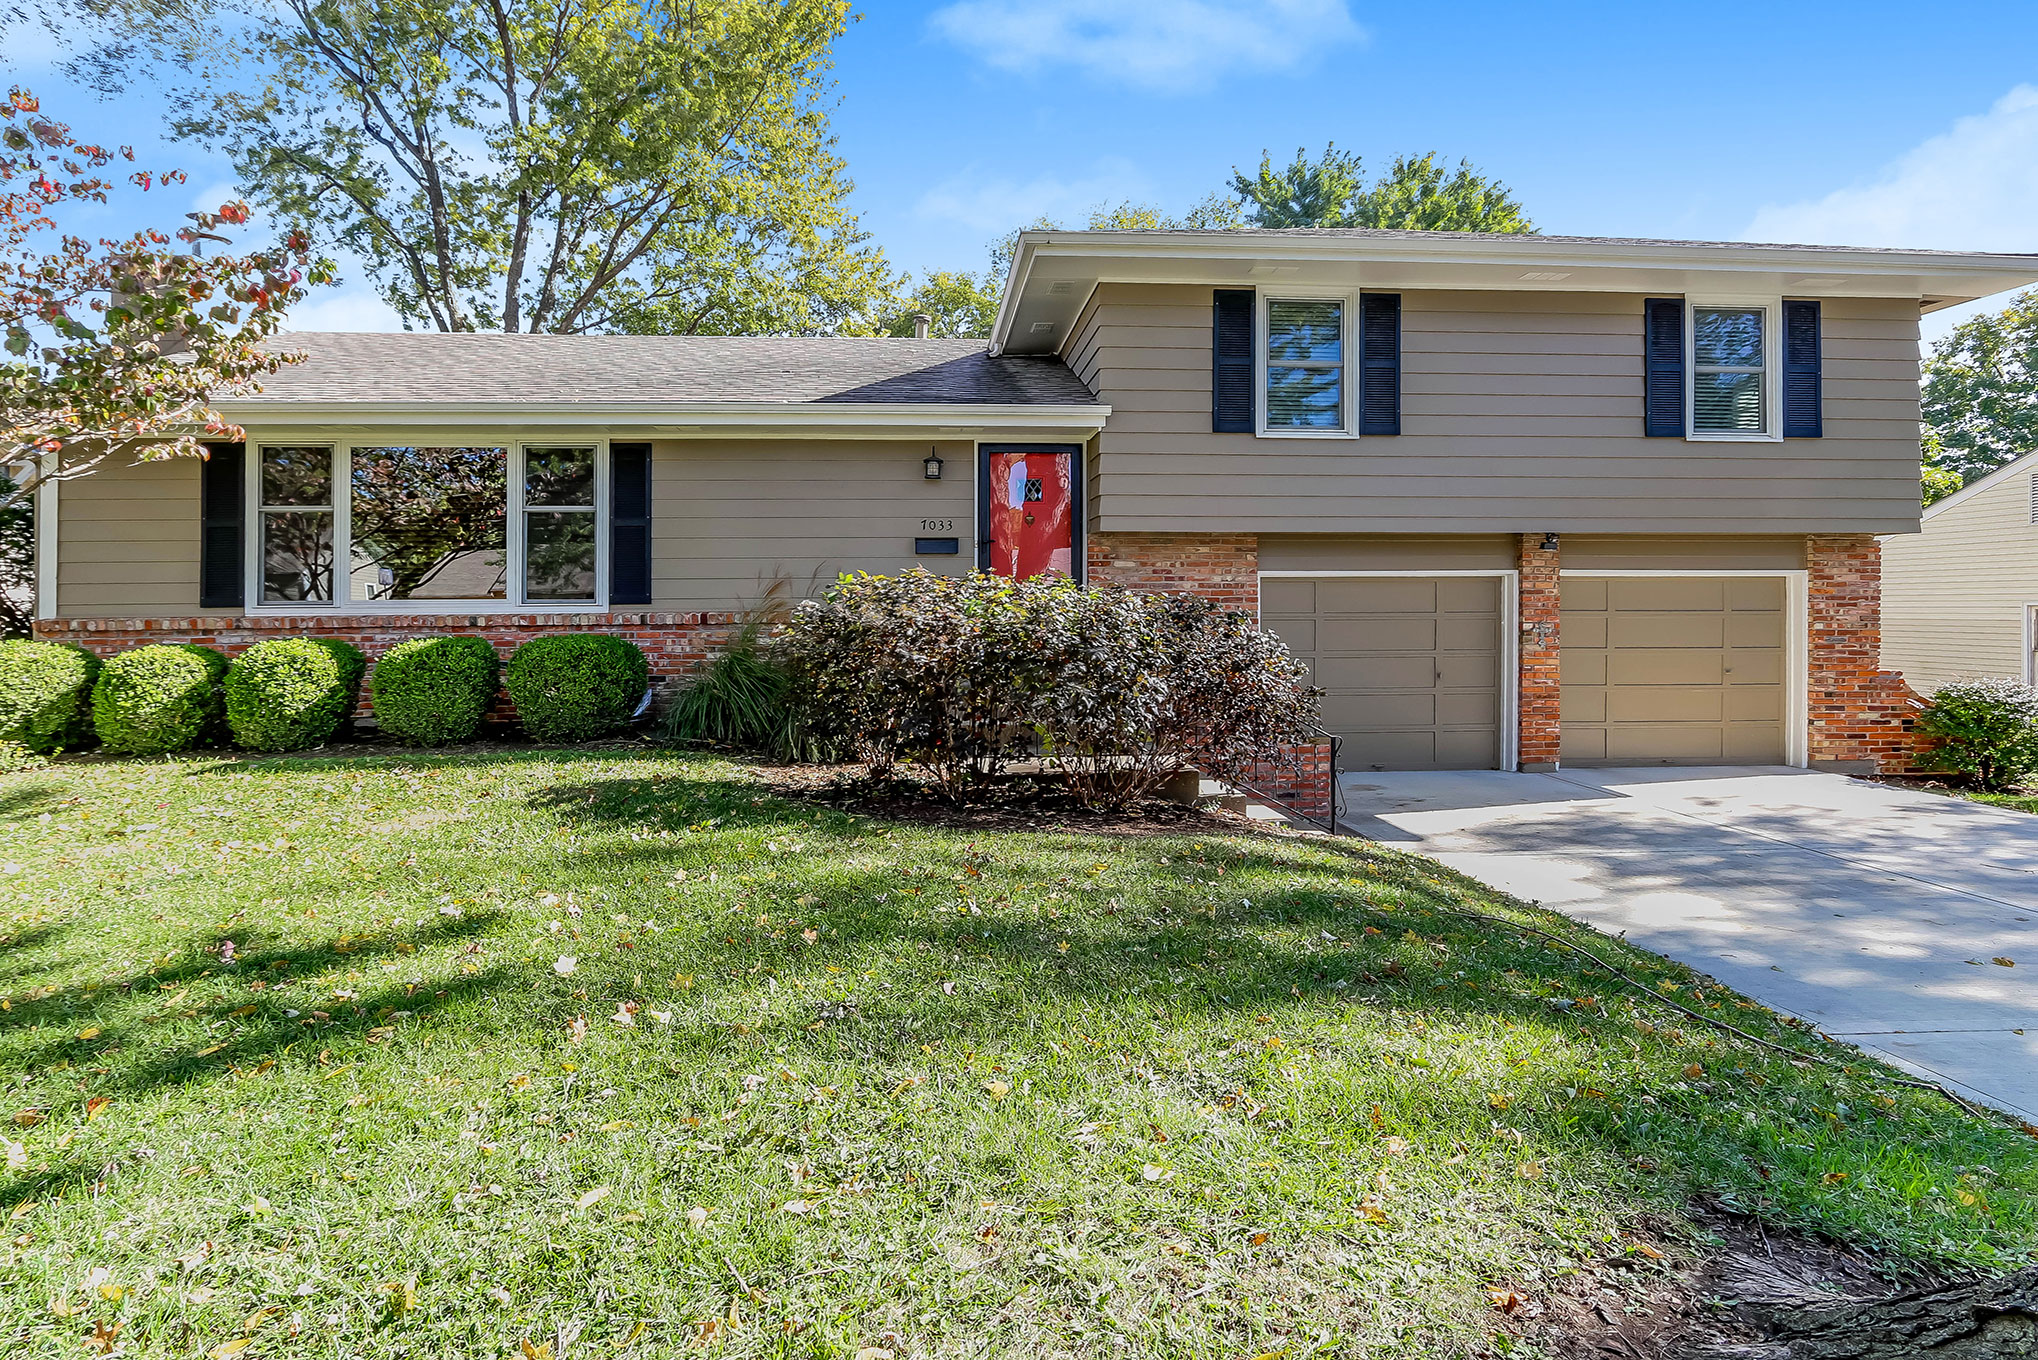 Southmoor Overland Park Homes for Sale